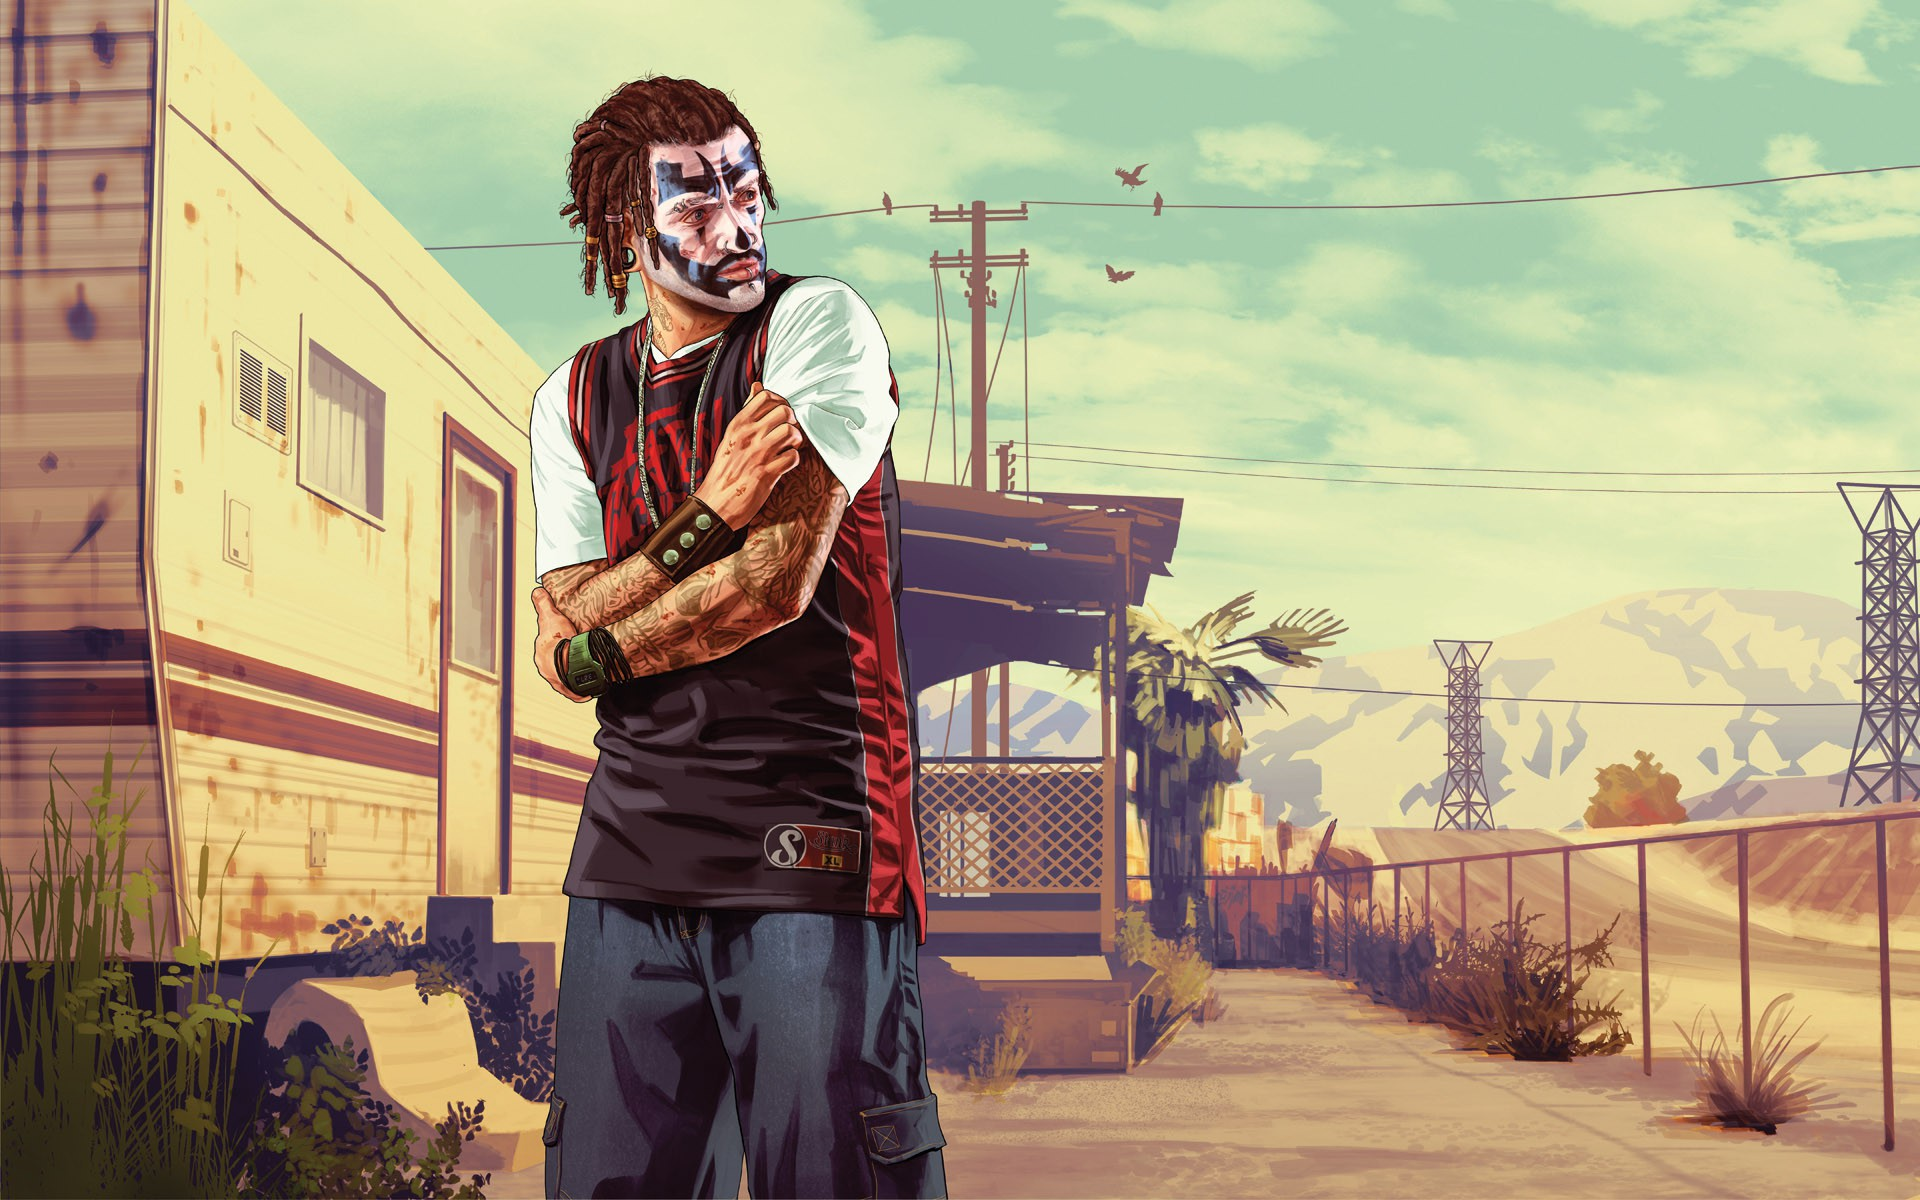 gta5-artwork-40-hd.jpg